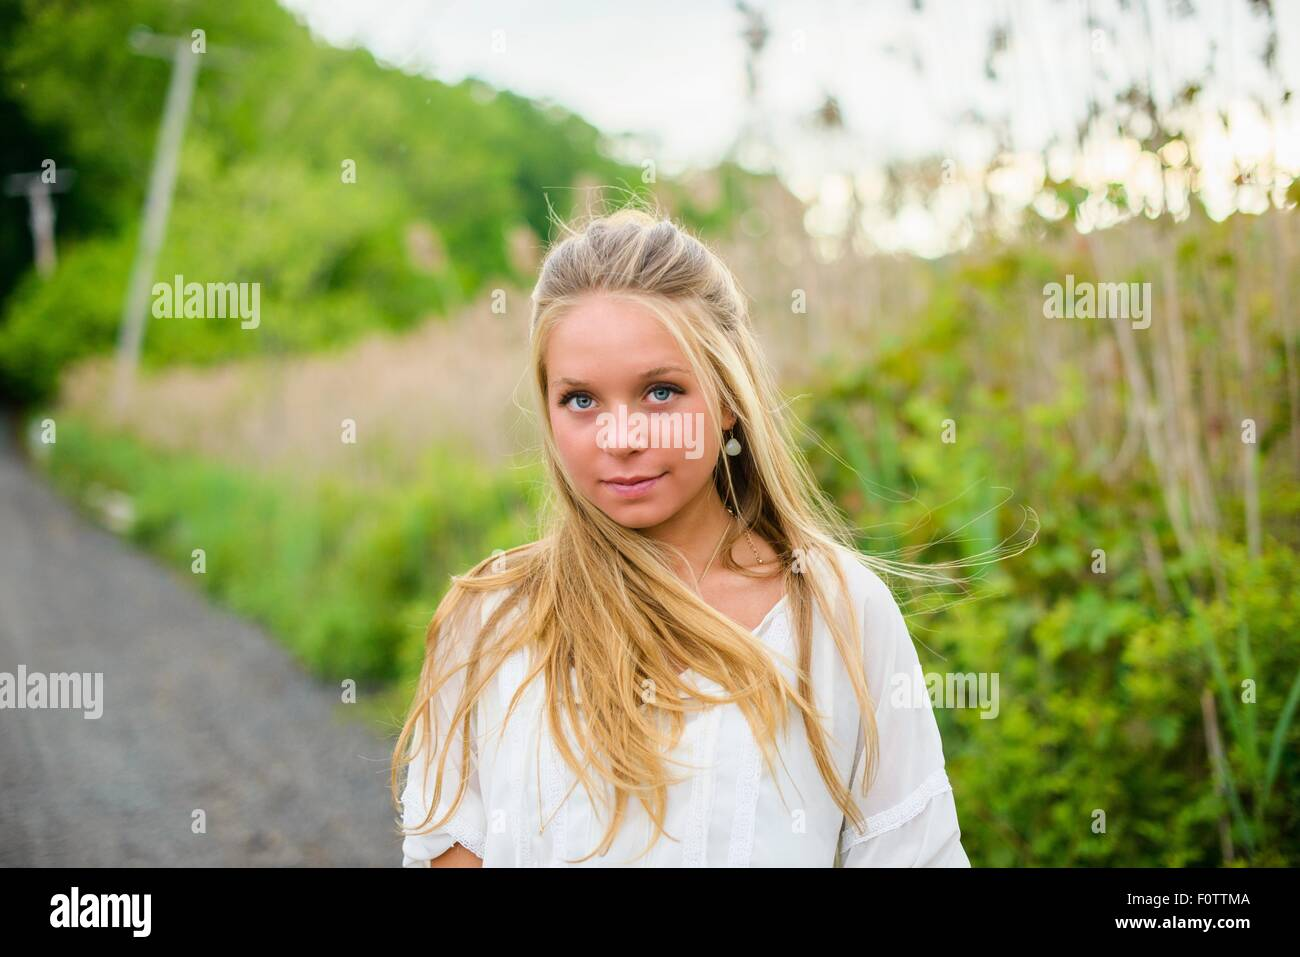 Portrait of  young woman with long blond hair on rural road - Stock Image